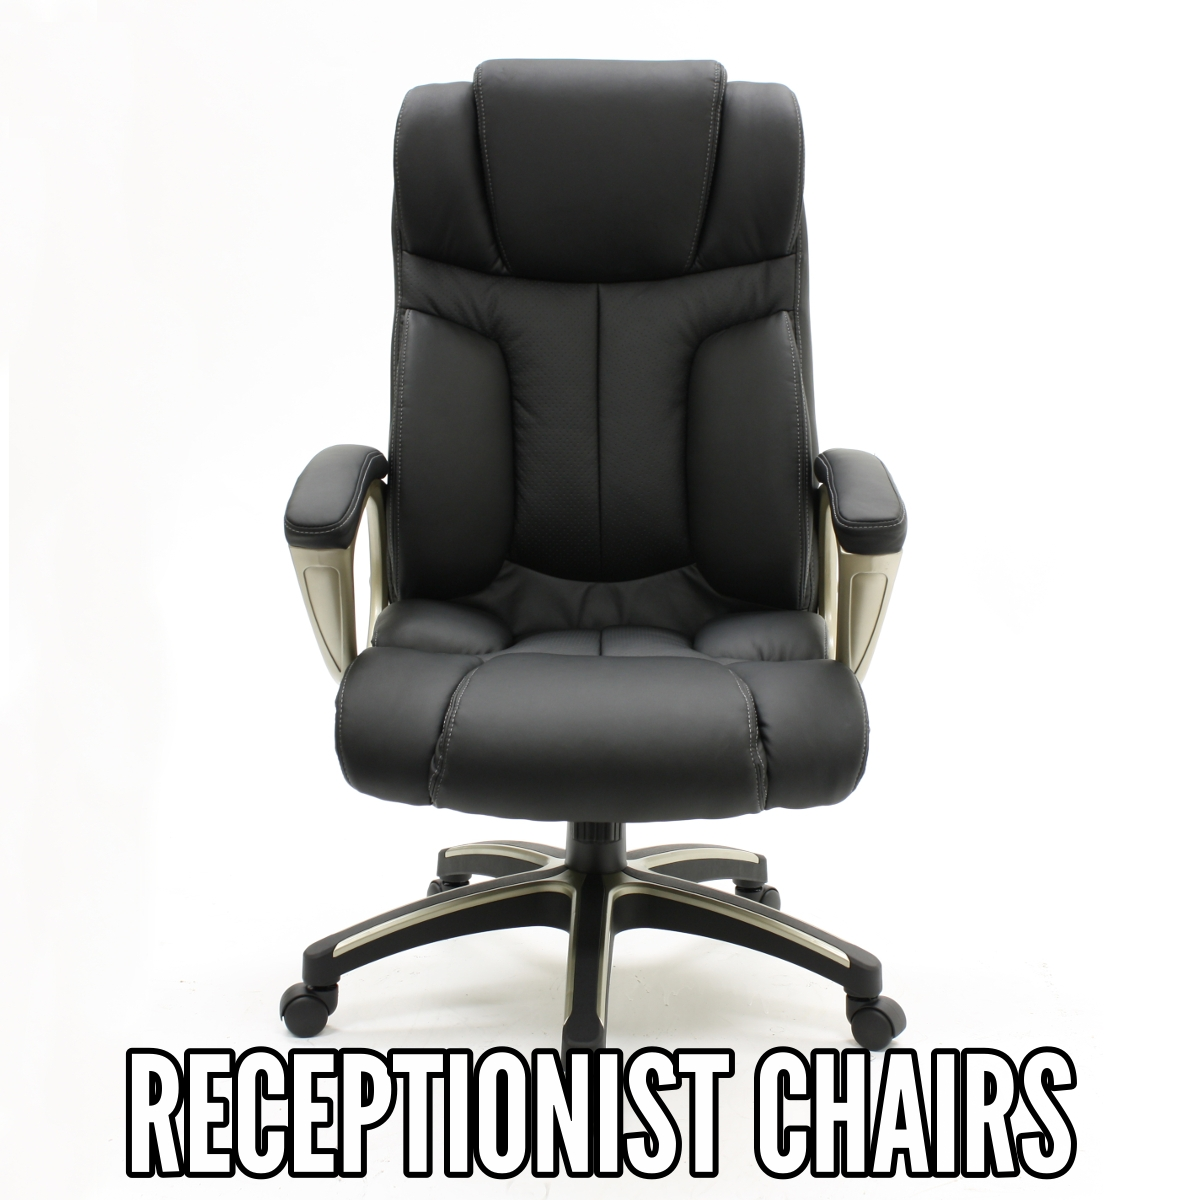 Receptionist Chairs | Reception Area Furniture | CCI Beauty